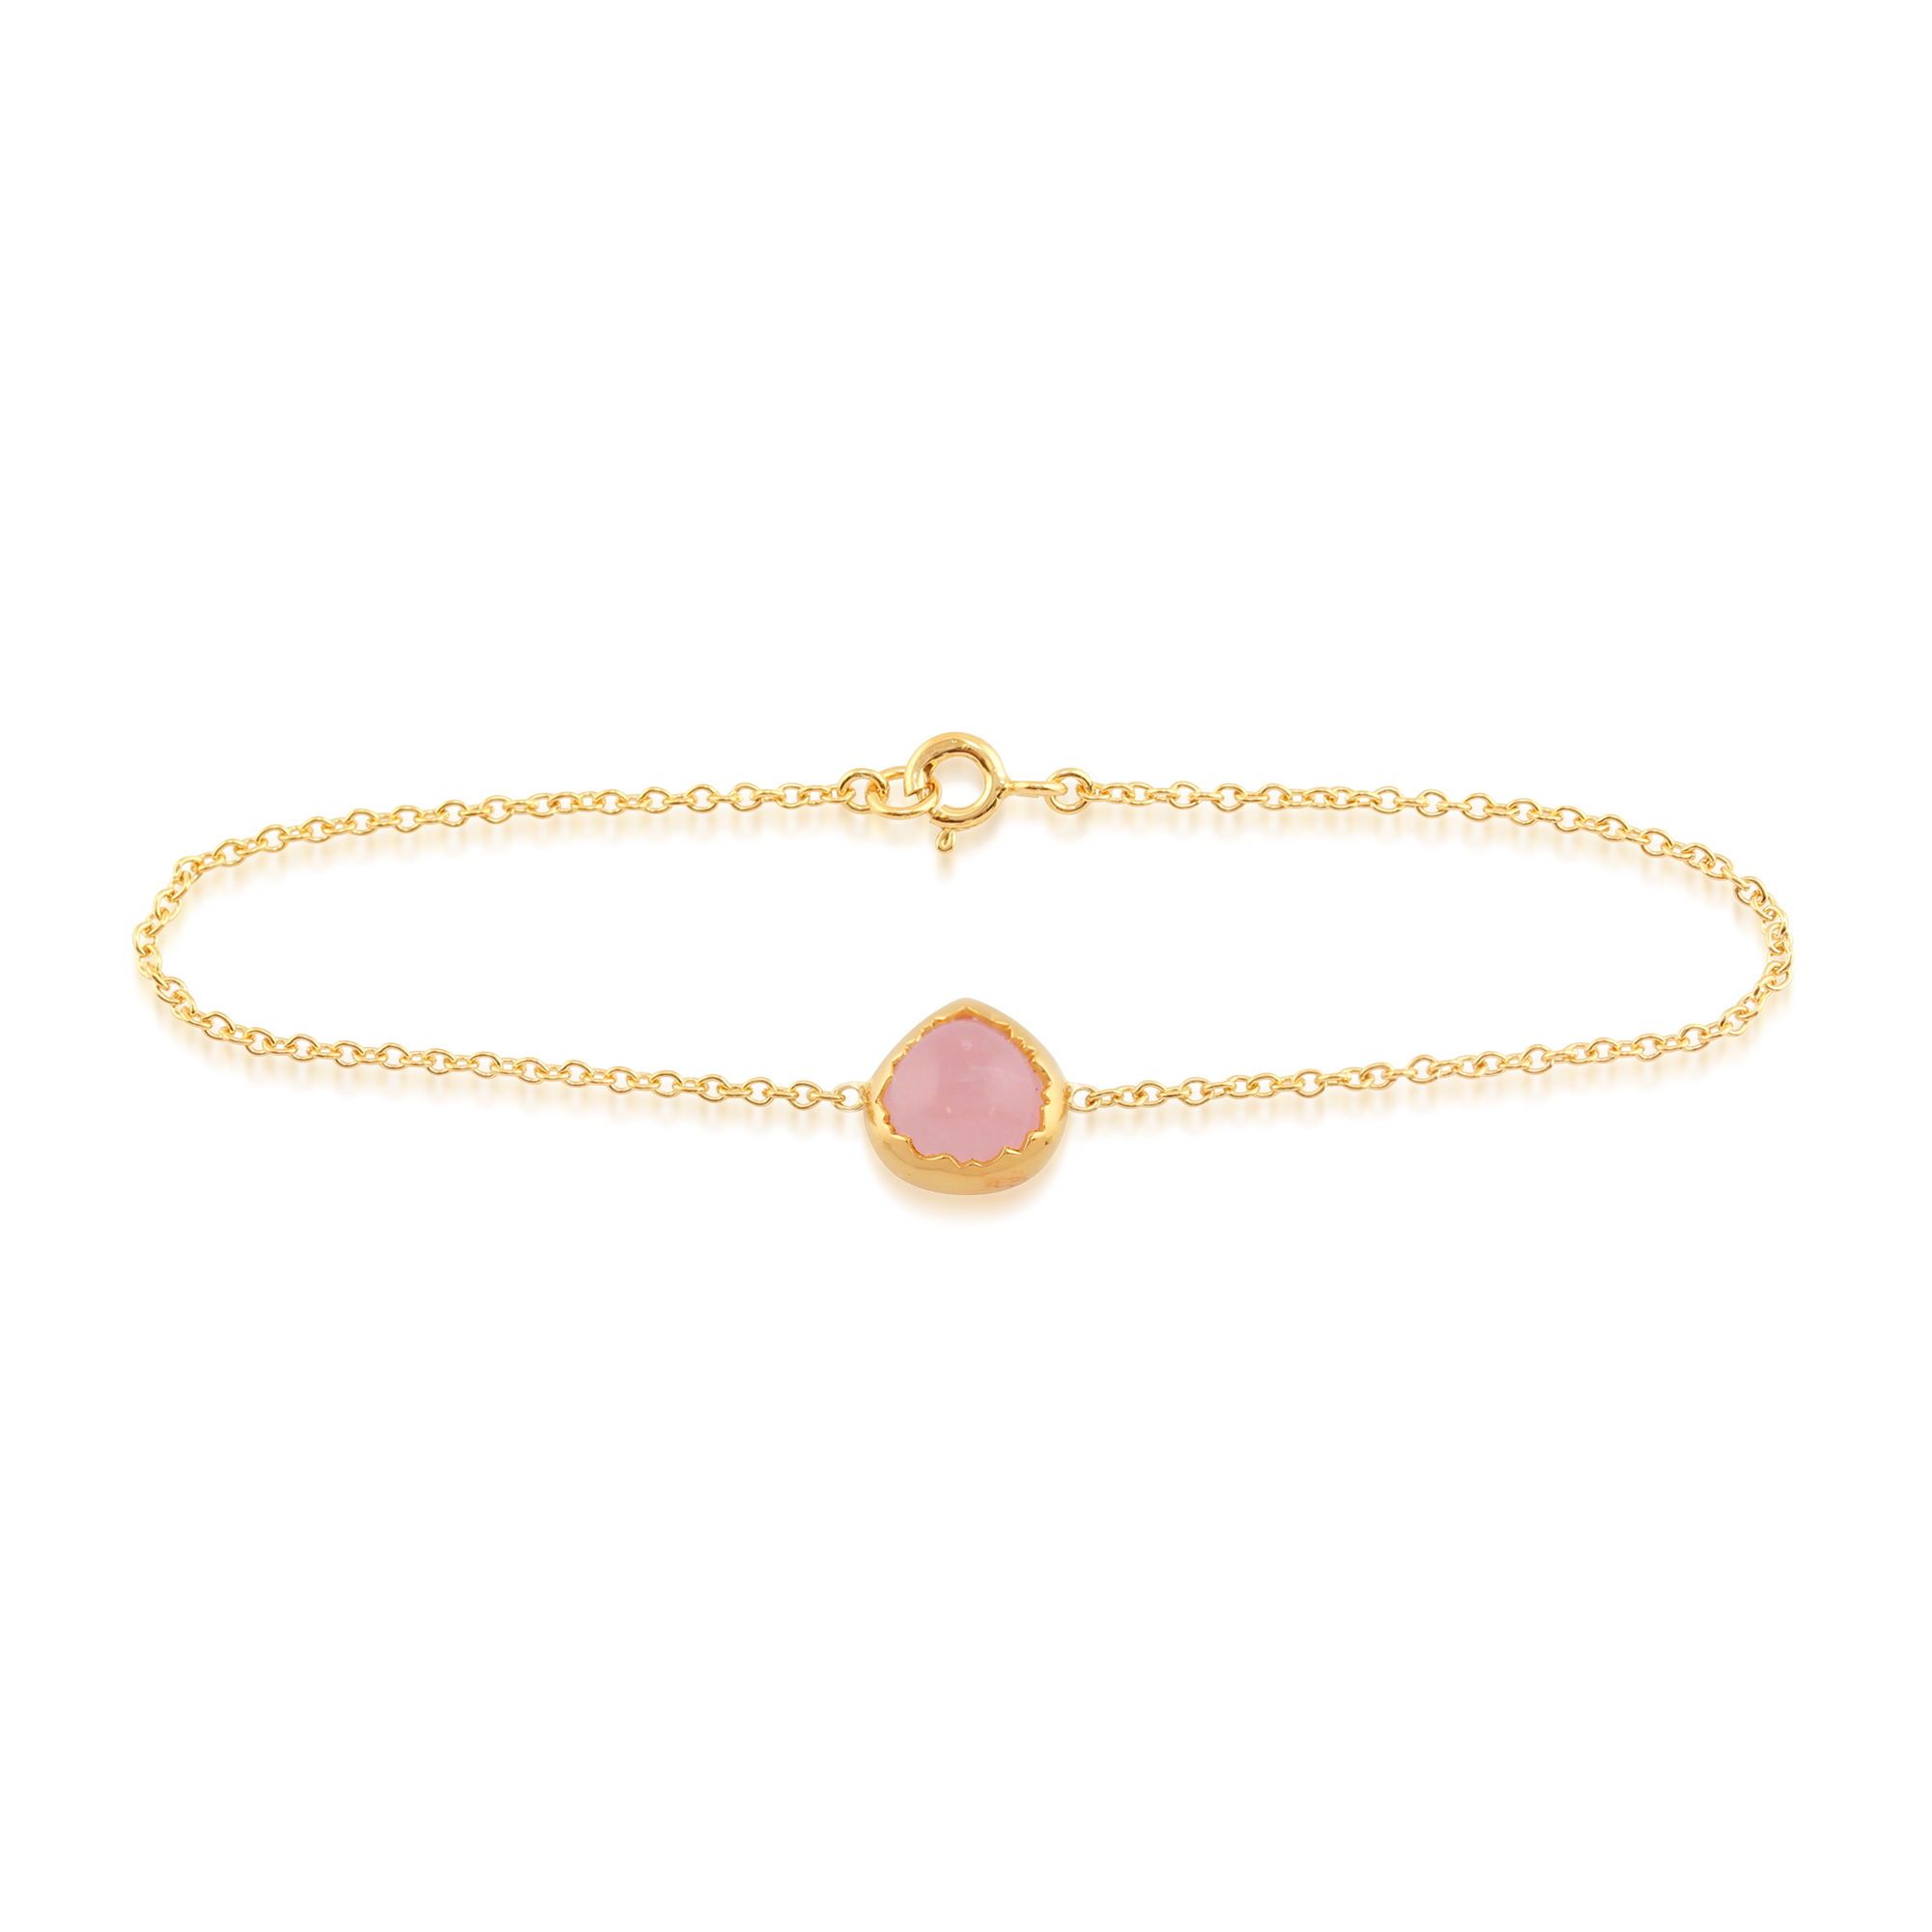 Rose Quartz 'Diantha' Pastel Bracelet in 9ct Yellow Gold Plated Sterling Silver